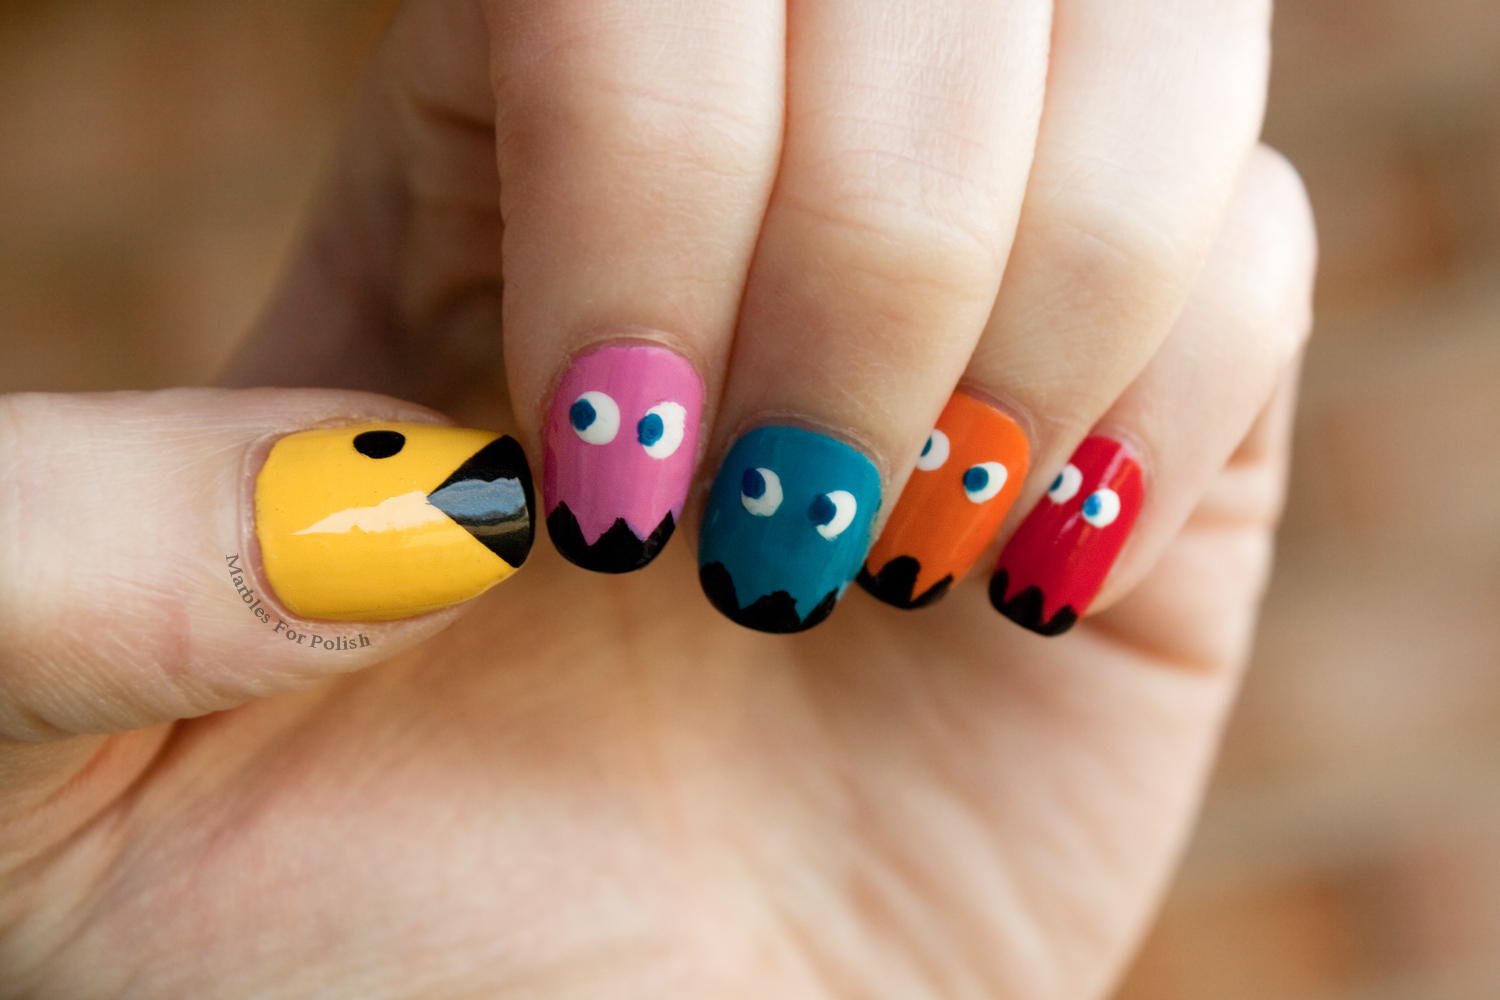 Nerd polish one quest pacman nail art prinsesfo Image collections